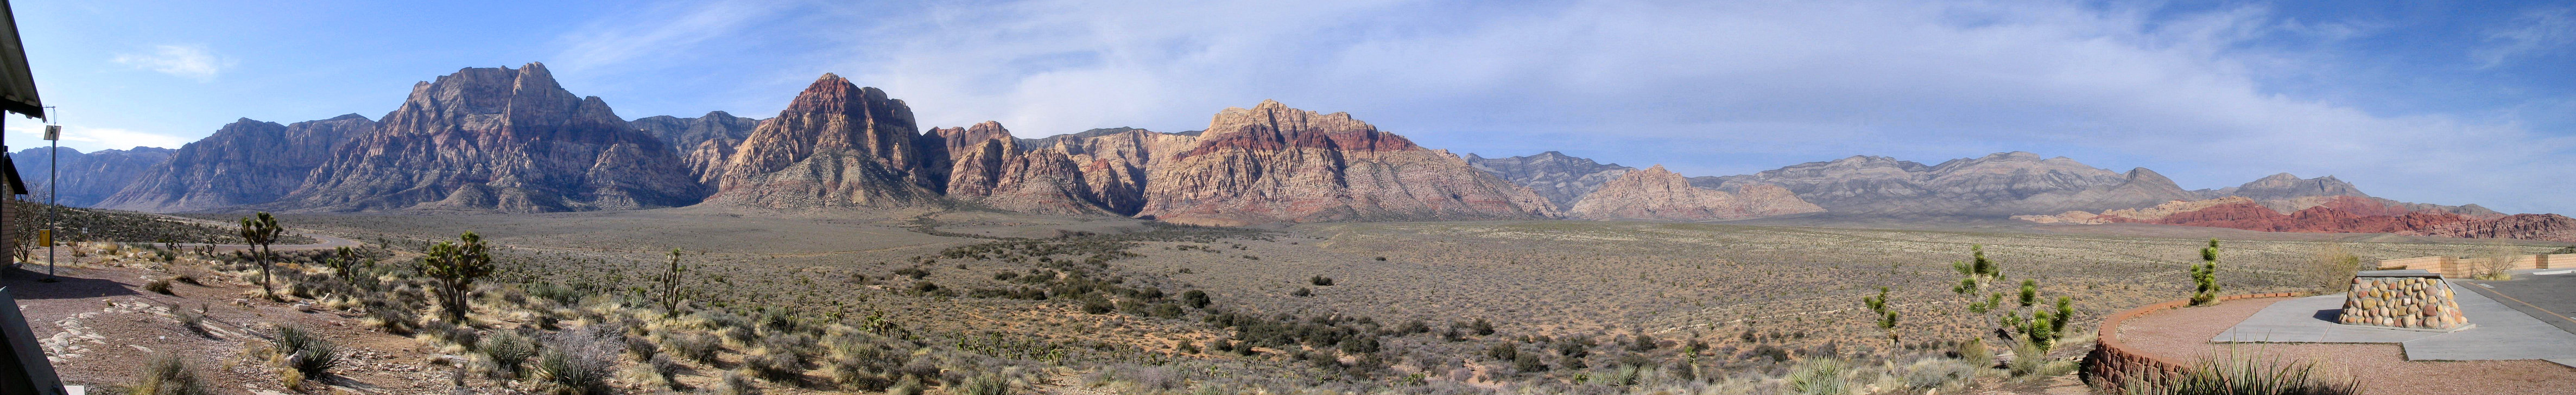 Panorama of Red Rock taken from an overlook point (Zoom View)